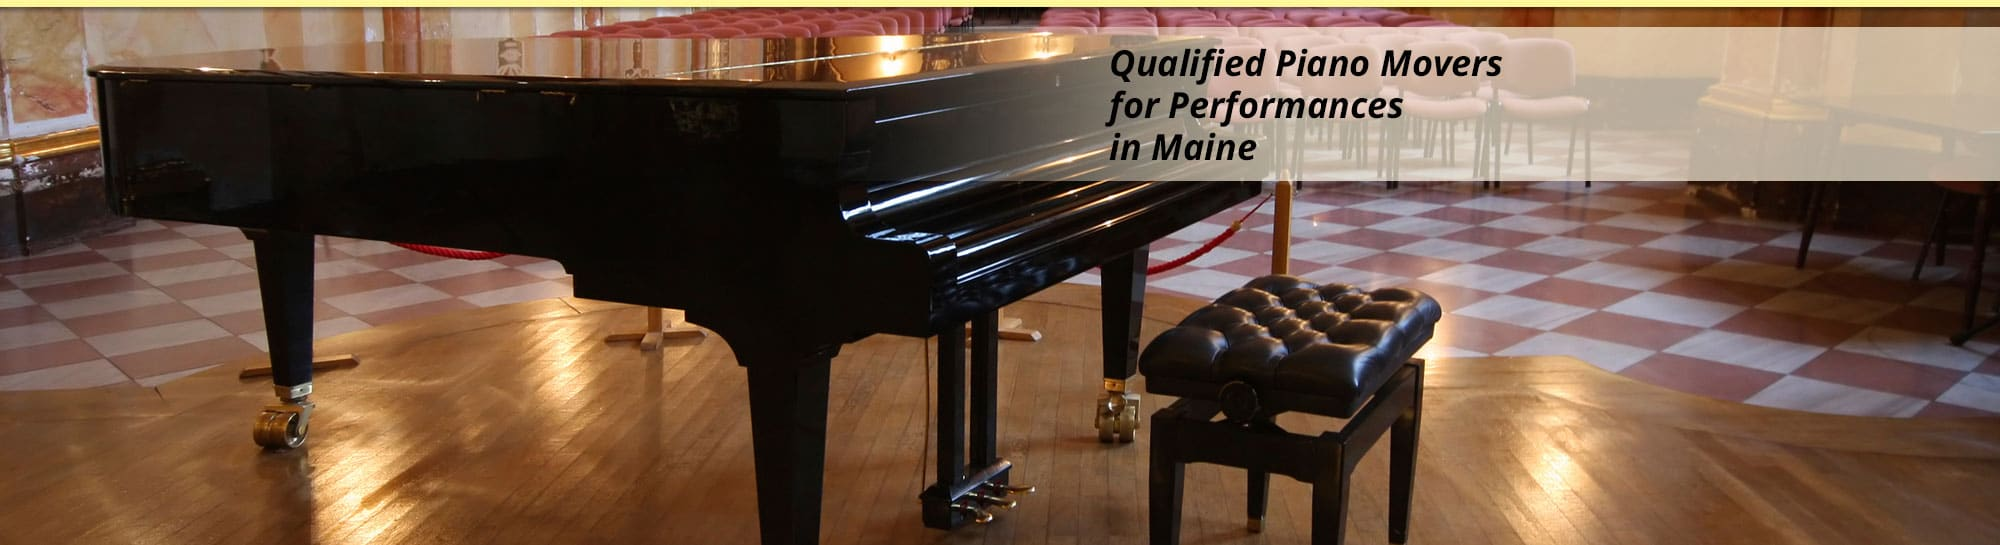 Qualified Piano Movers for Performances in Maine